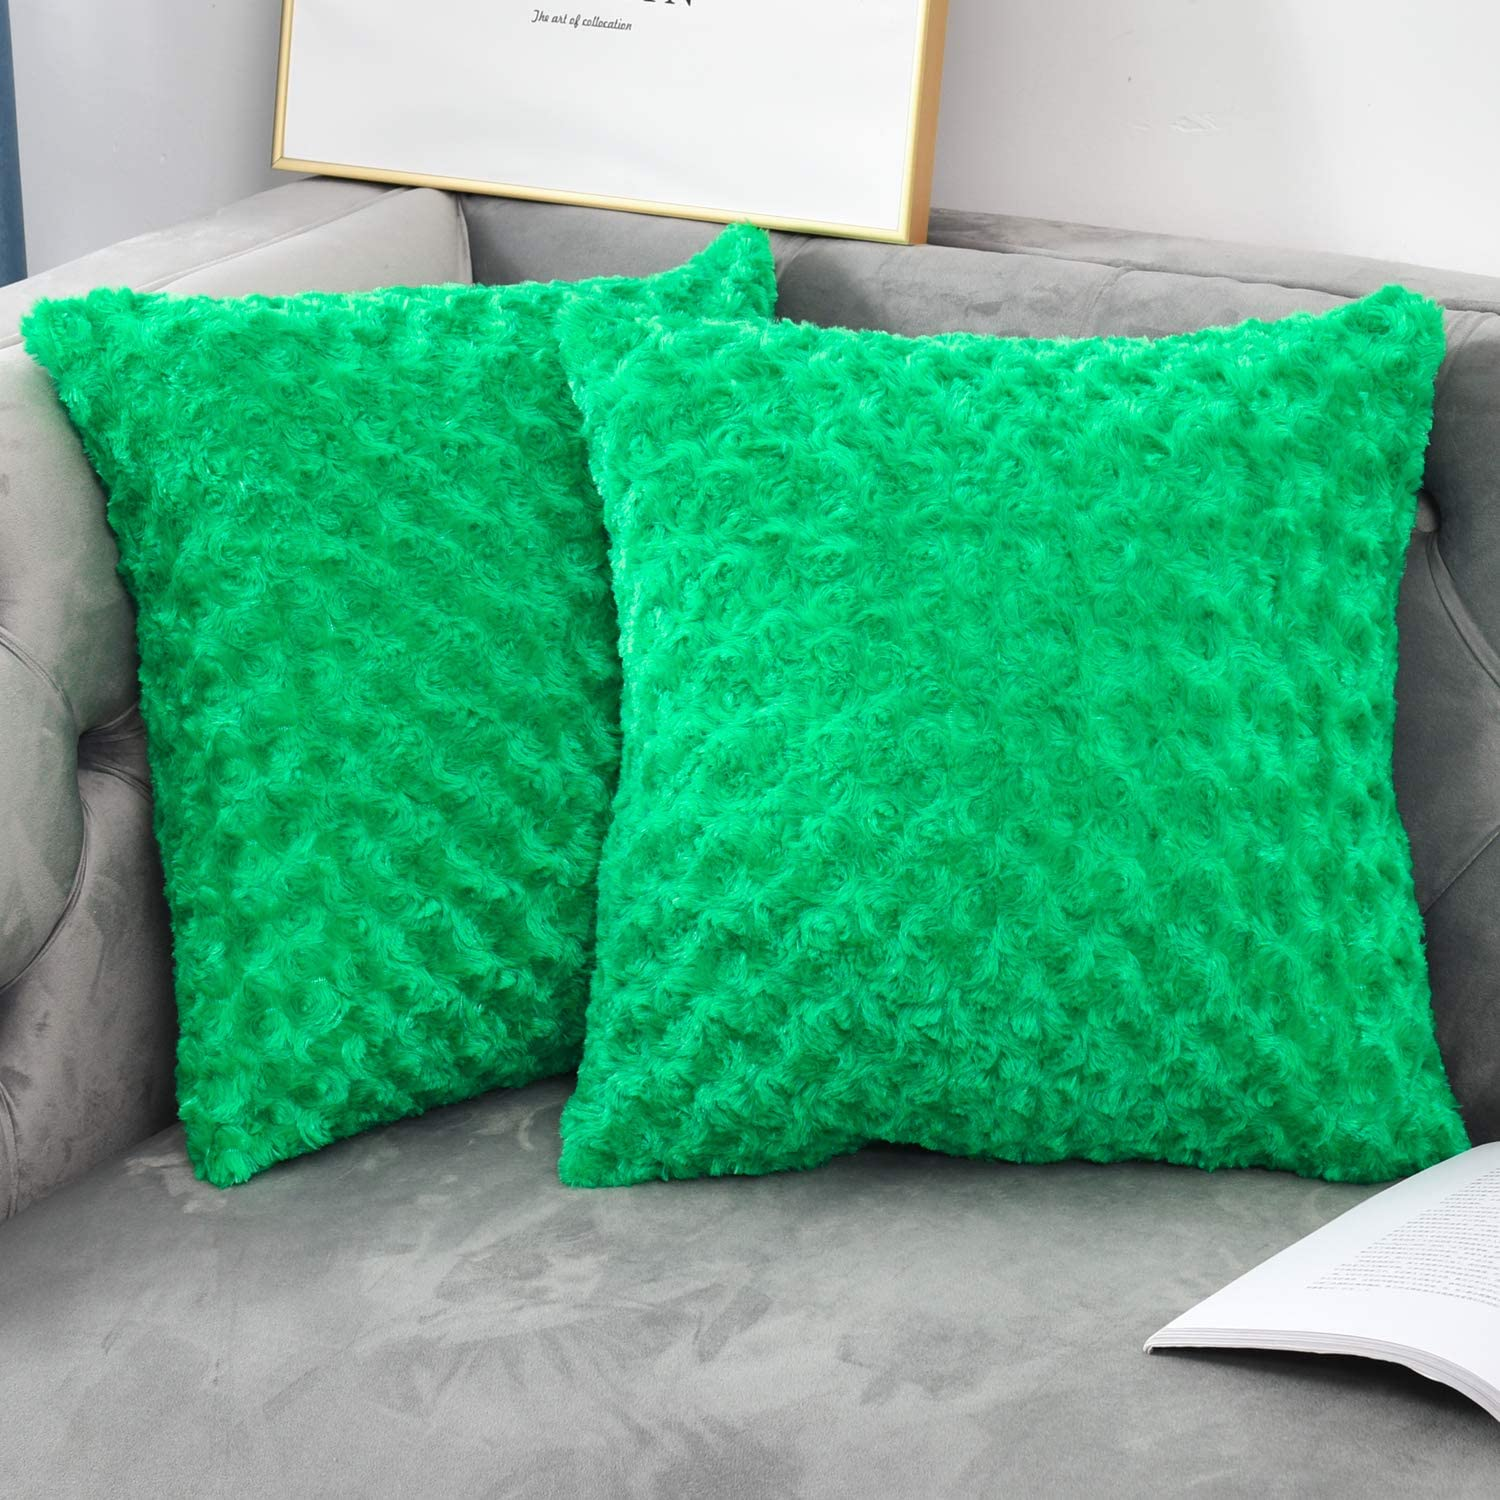 Amazon Com Nianer Square Faux Fur Throw Pillow Covers Set Of 2 Soft Solid Fall Winter Decorative Couch Cushion Pillow Cases 18x18 Green Home Kitchen